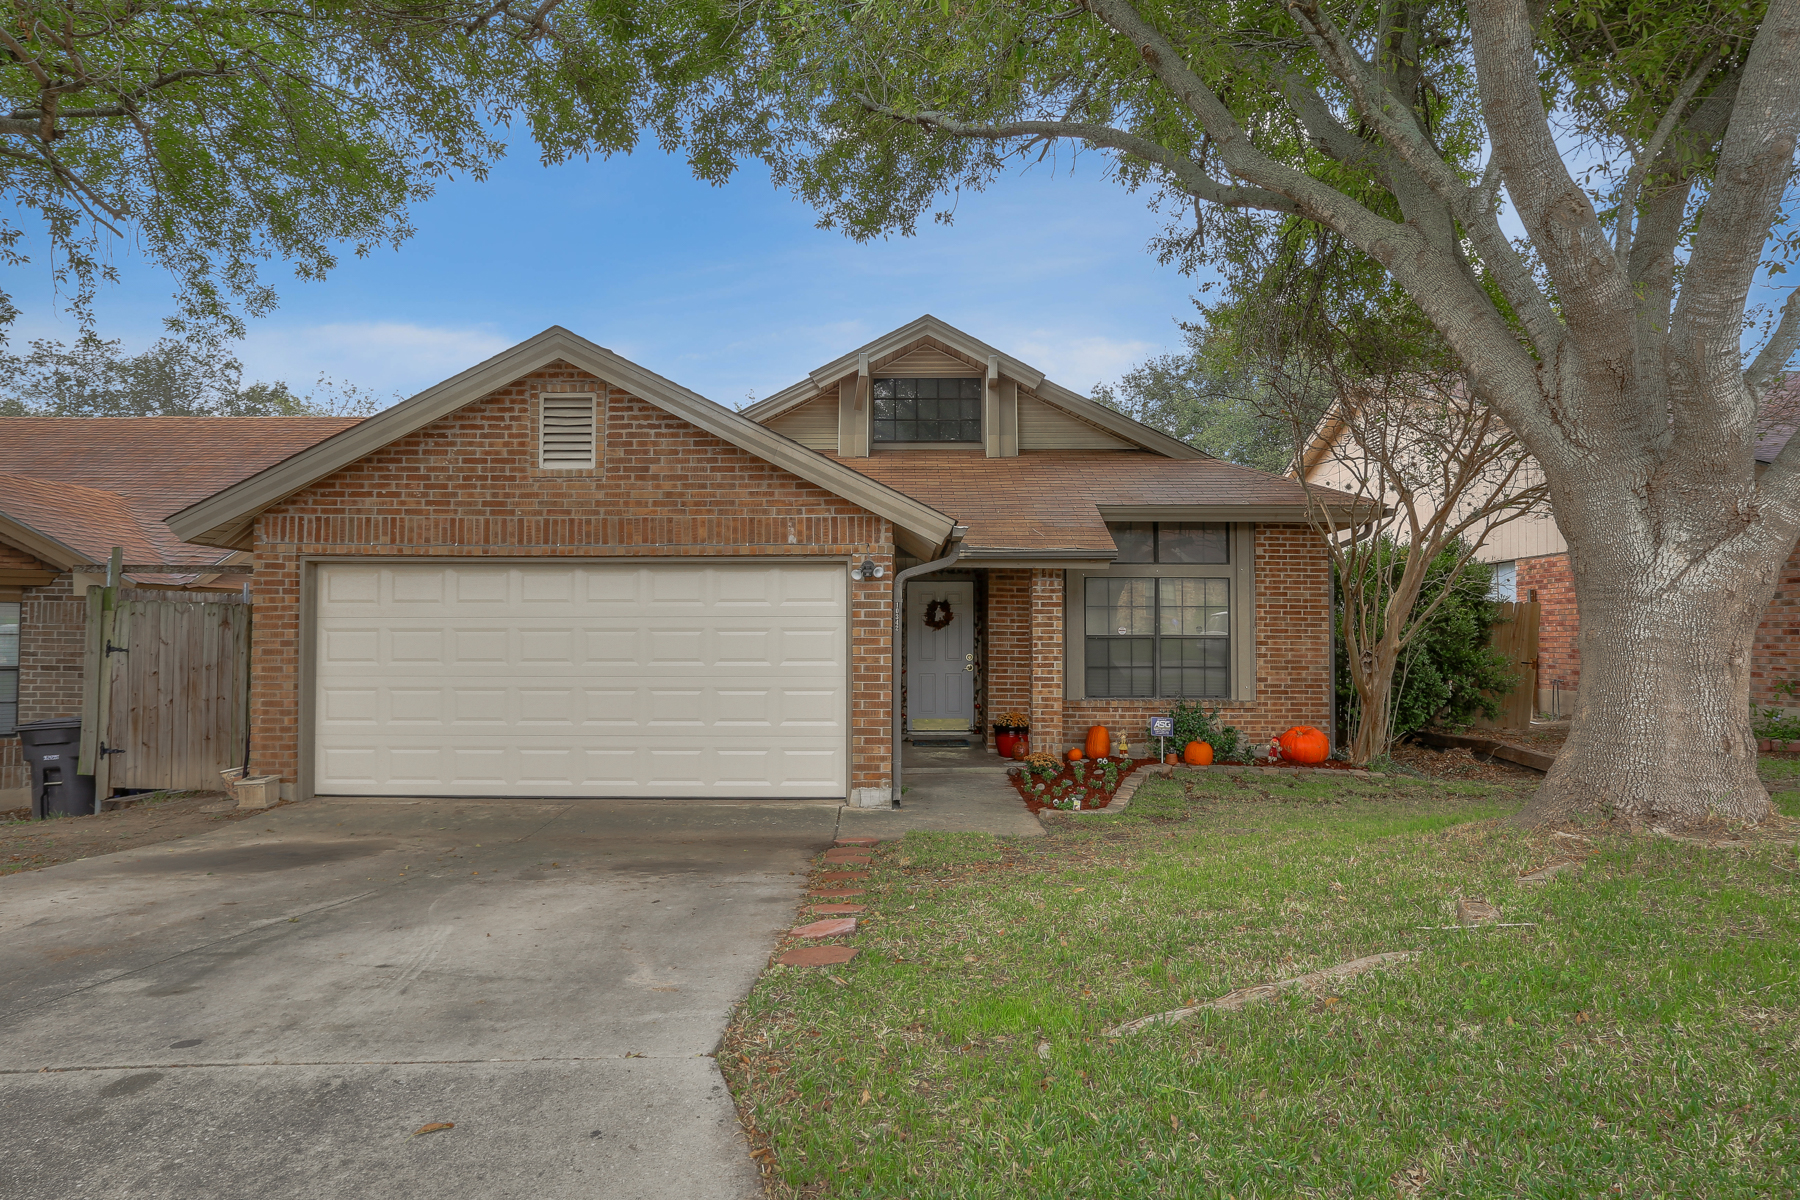 Single Family Home for Sale at Beautiful Single-Story Home in Heritage Northwest 10342 Rustic Village Dr San Antonio, Texas 78245 United States